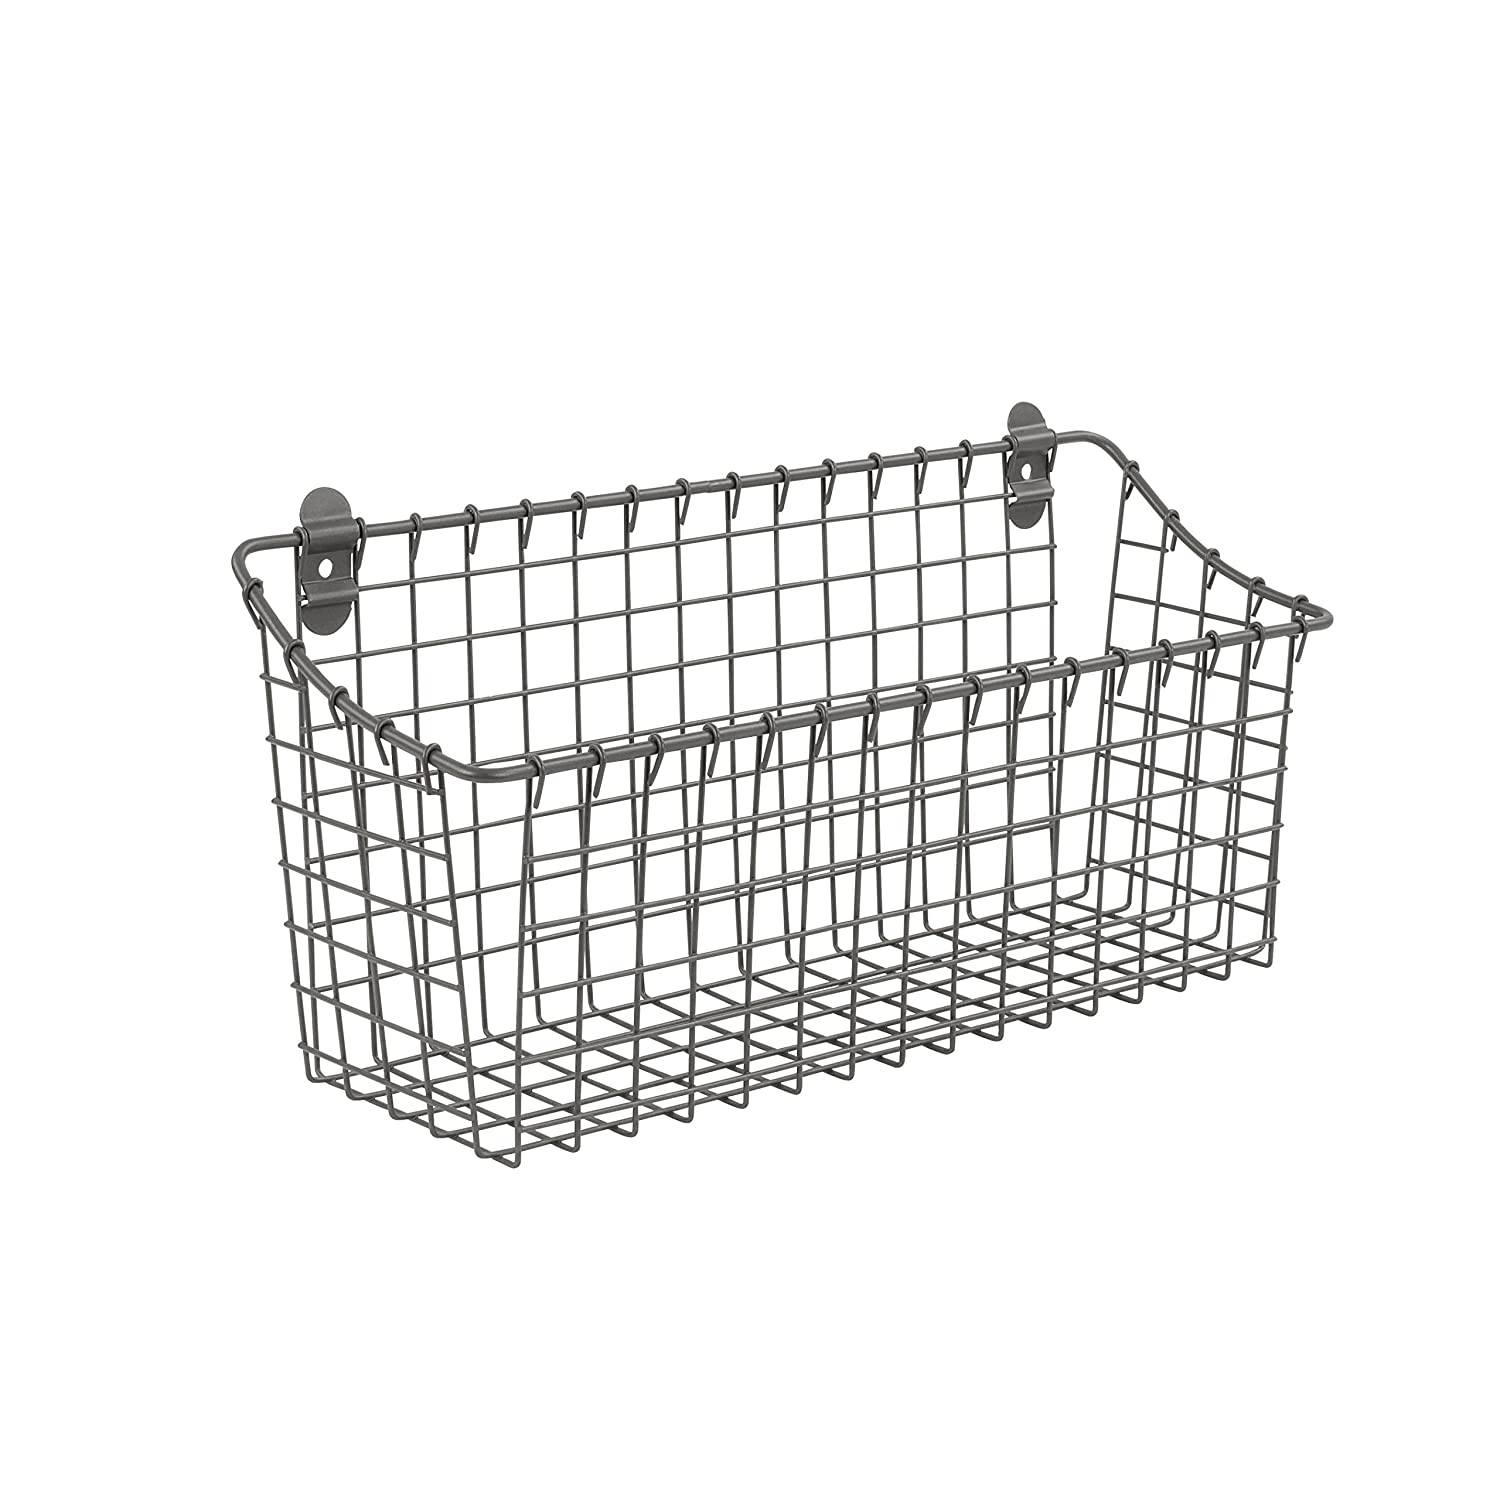 Spectrum Diversified Large Vintage Cabinet & Wall Mount Basket, Industrial Gray 86176